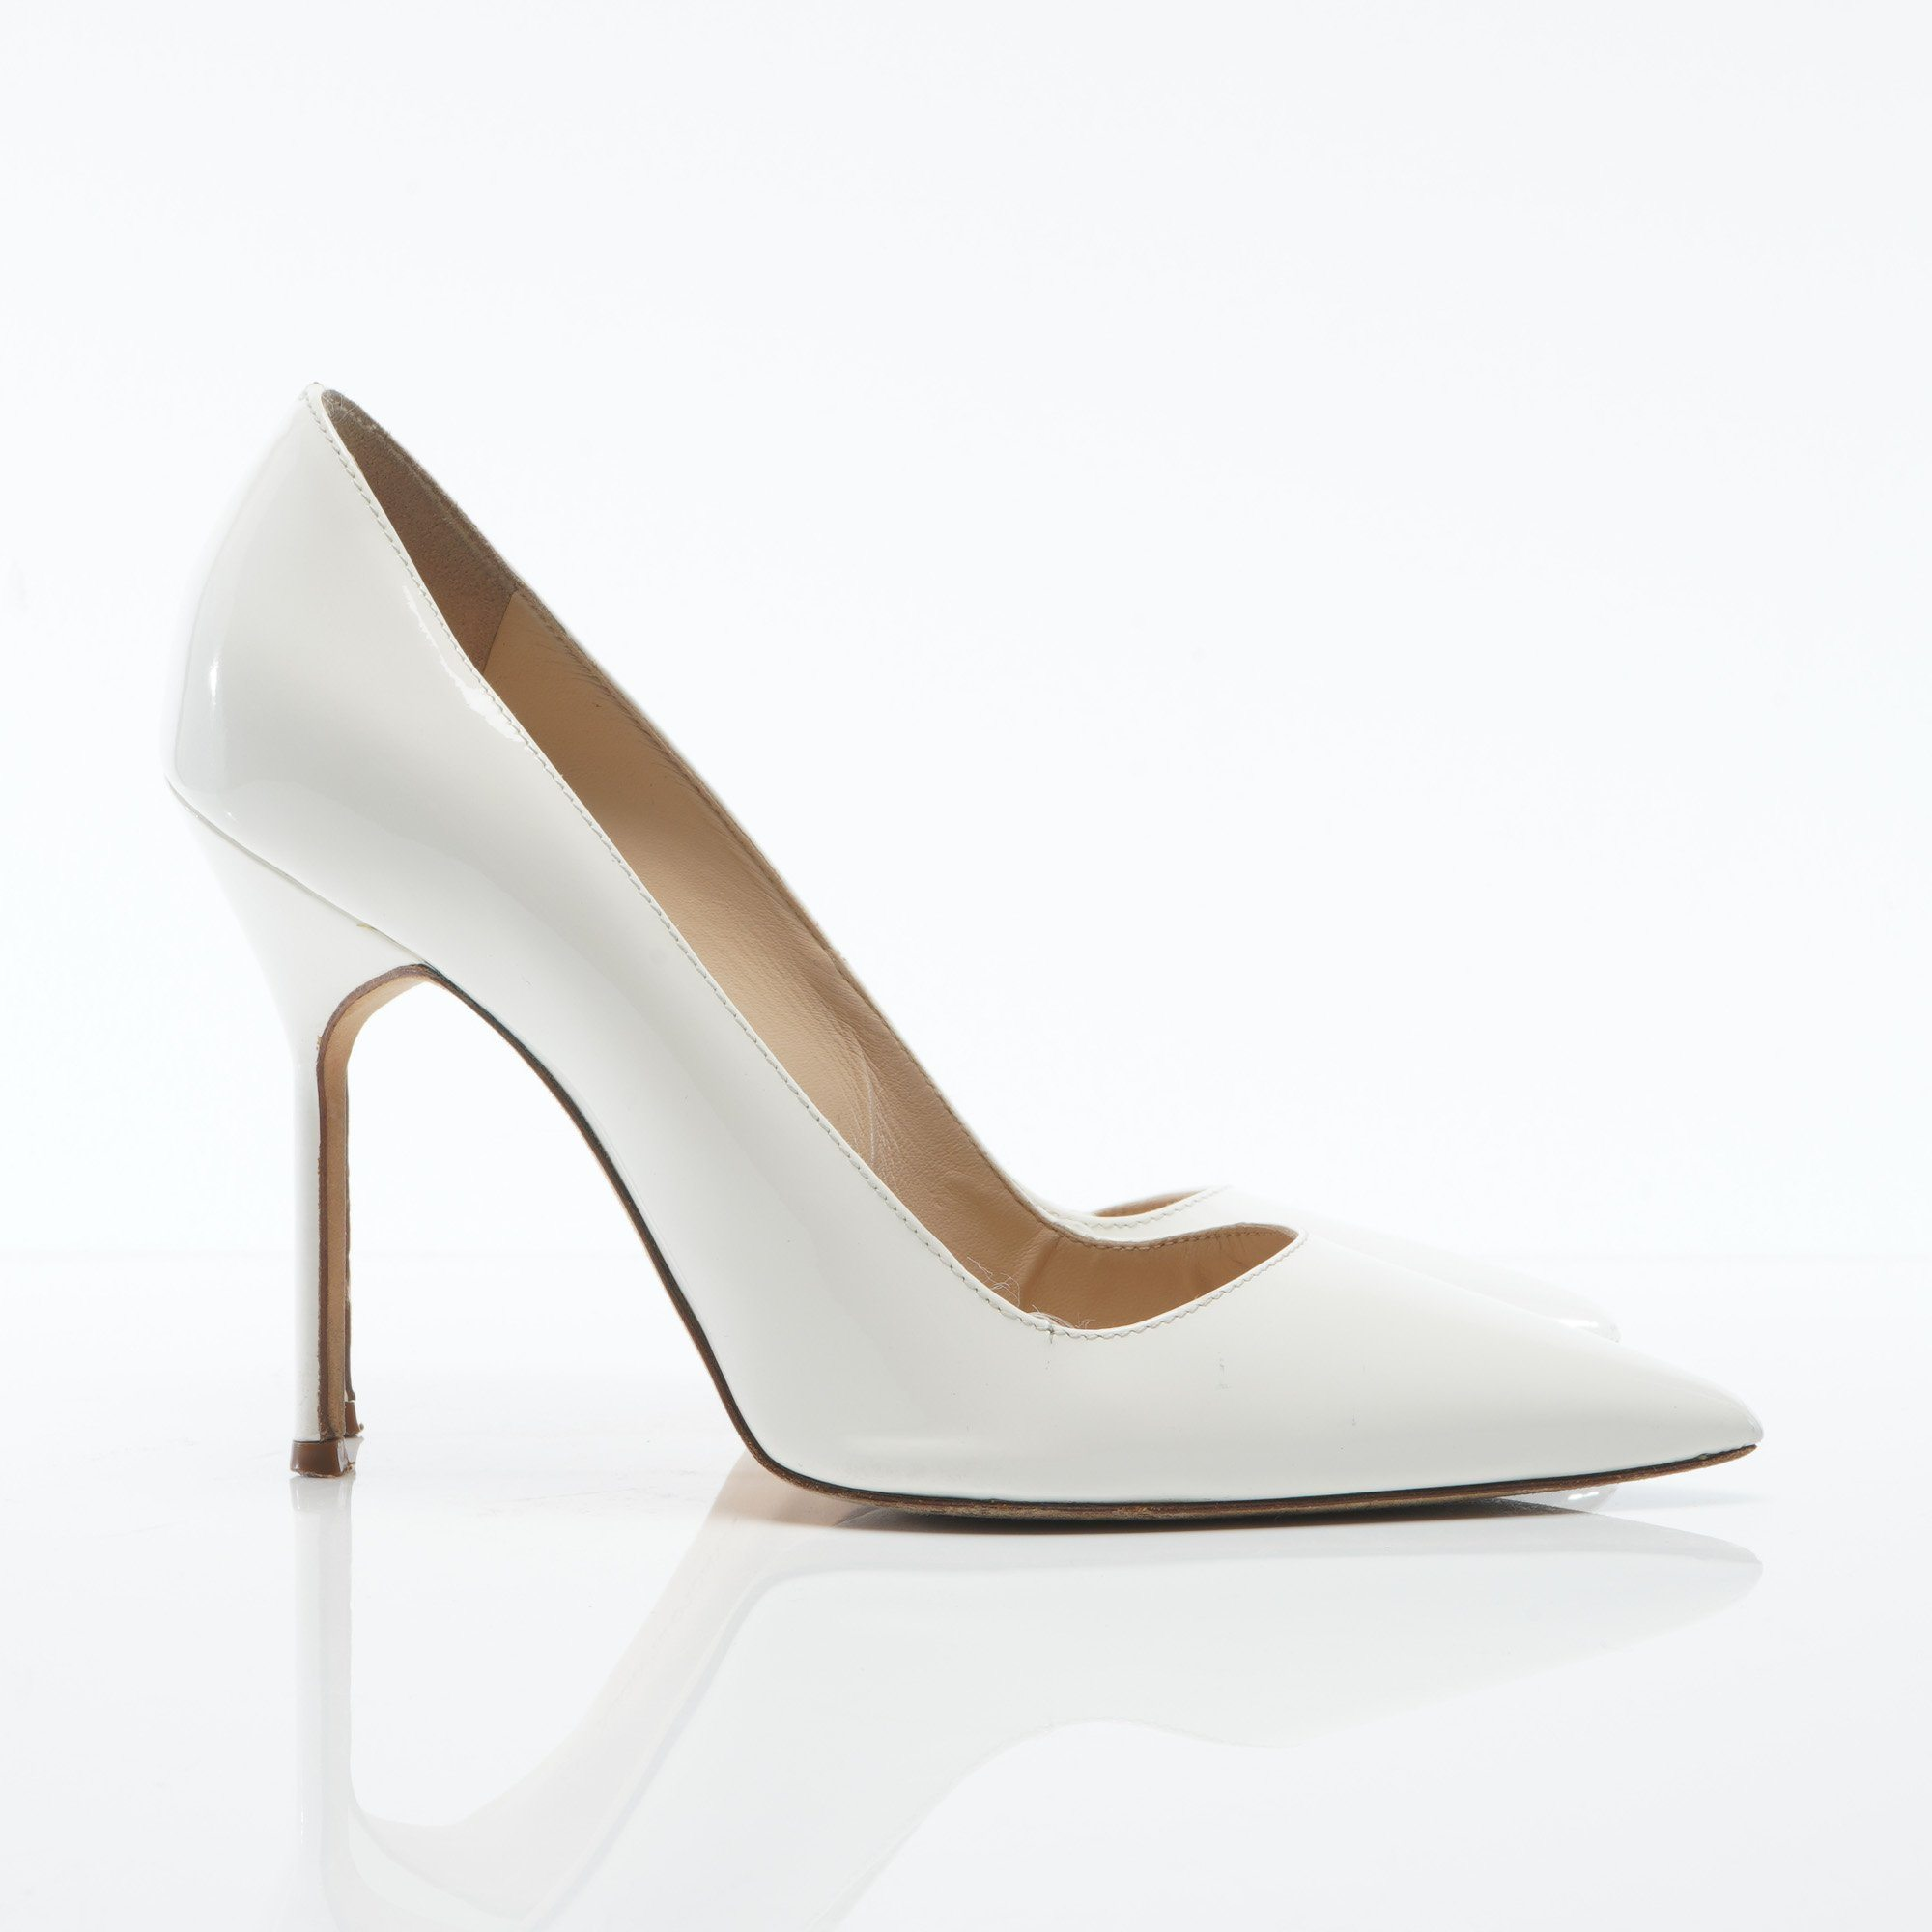 Manolo Blahnik White  Pointed Patent Leather Shoes